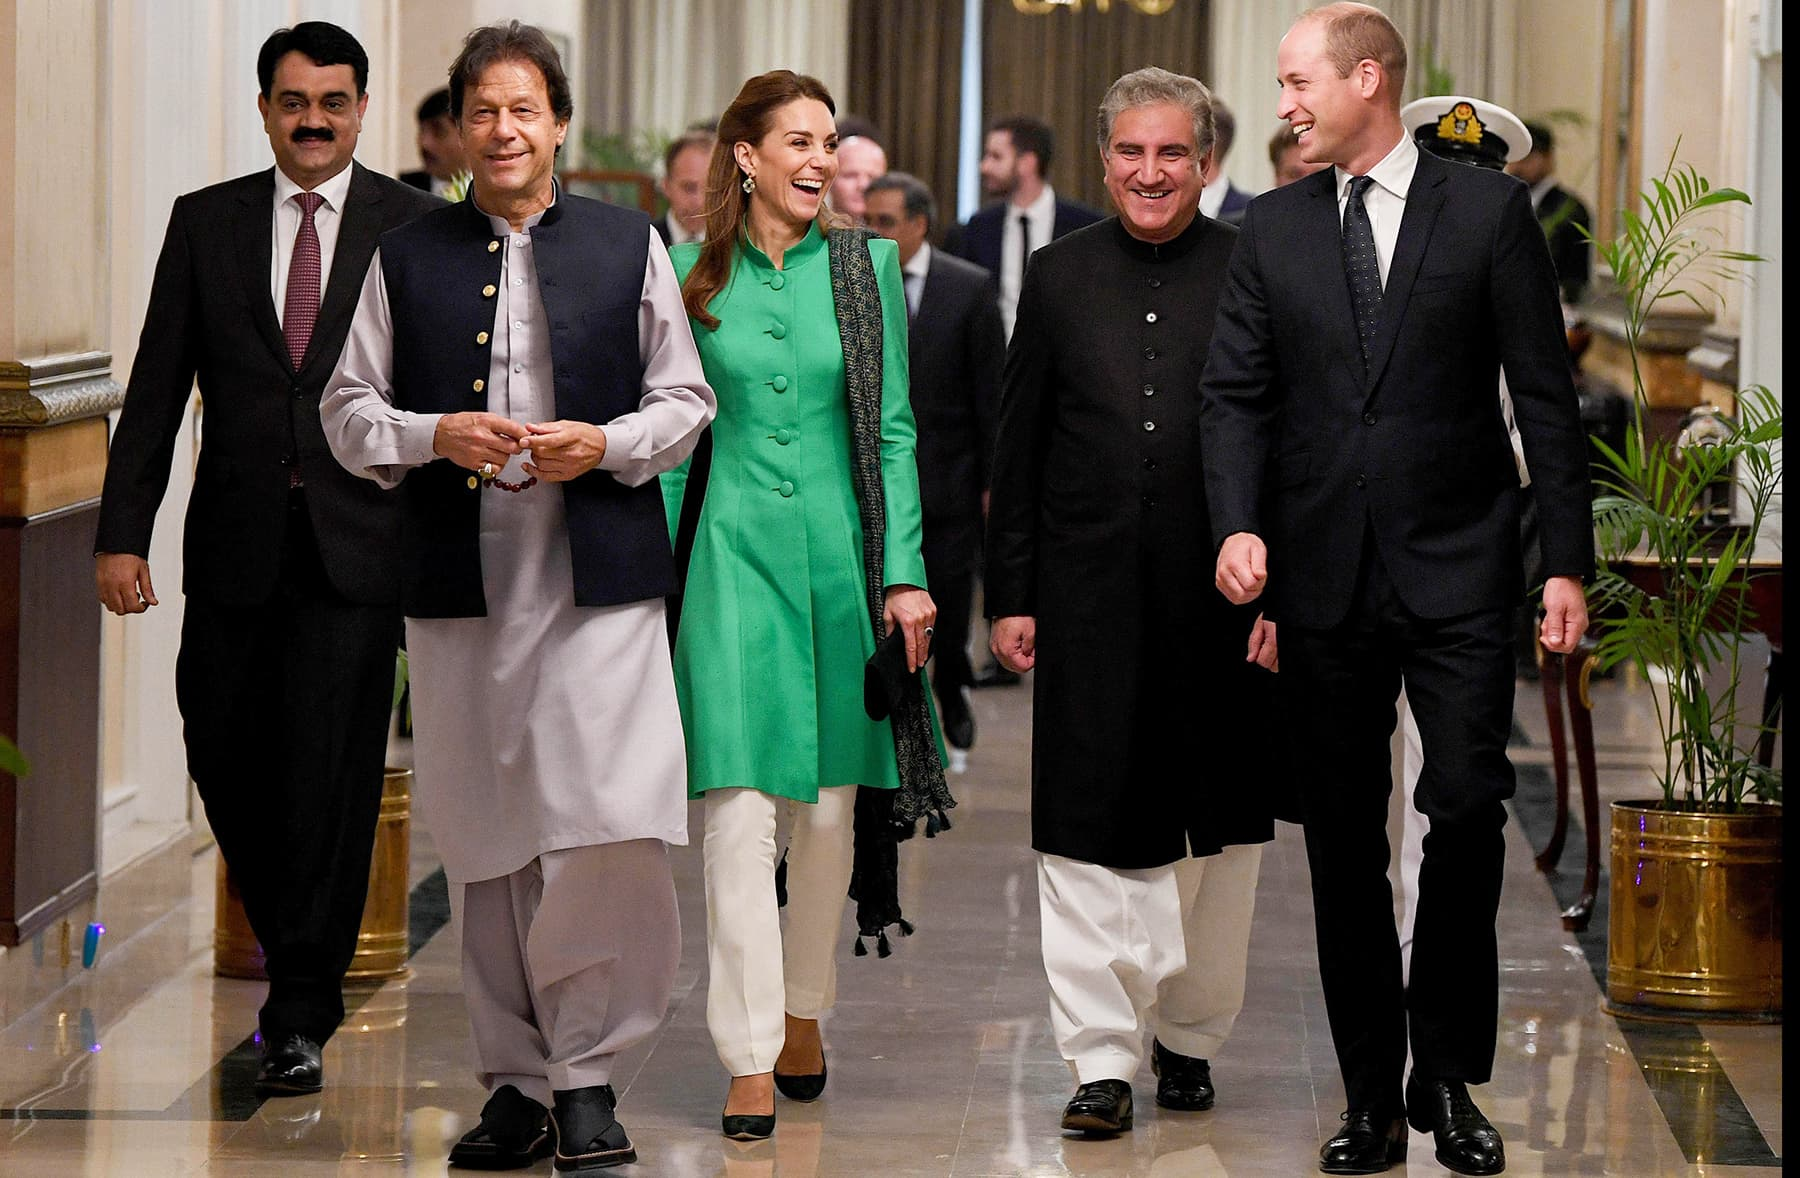 Prince William and Catherine walk alongside Prime Minister Imran Khan in Islamabad, October 15. — Reuters